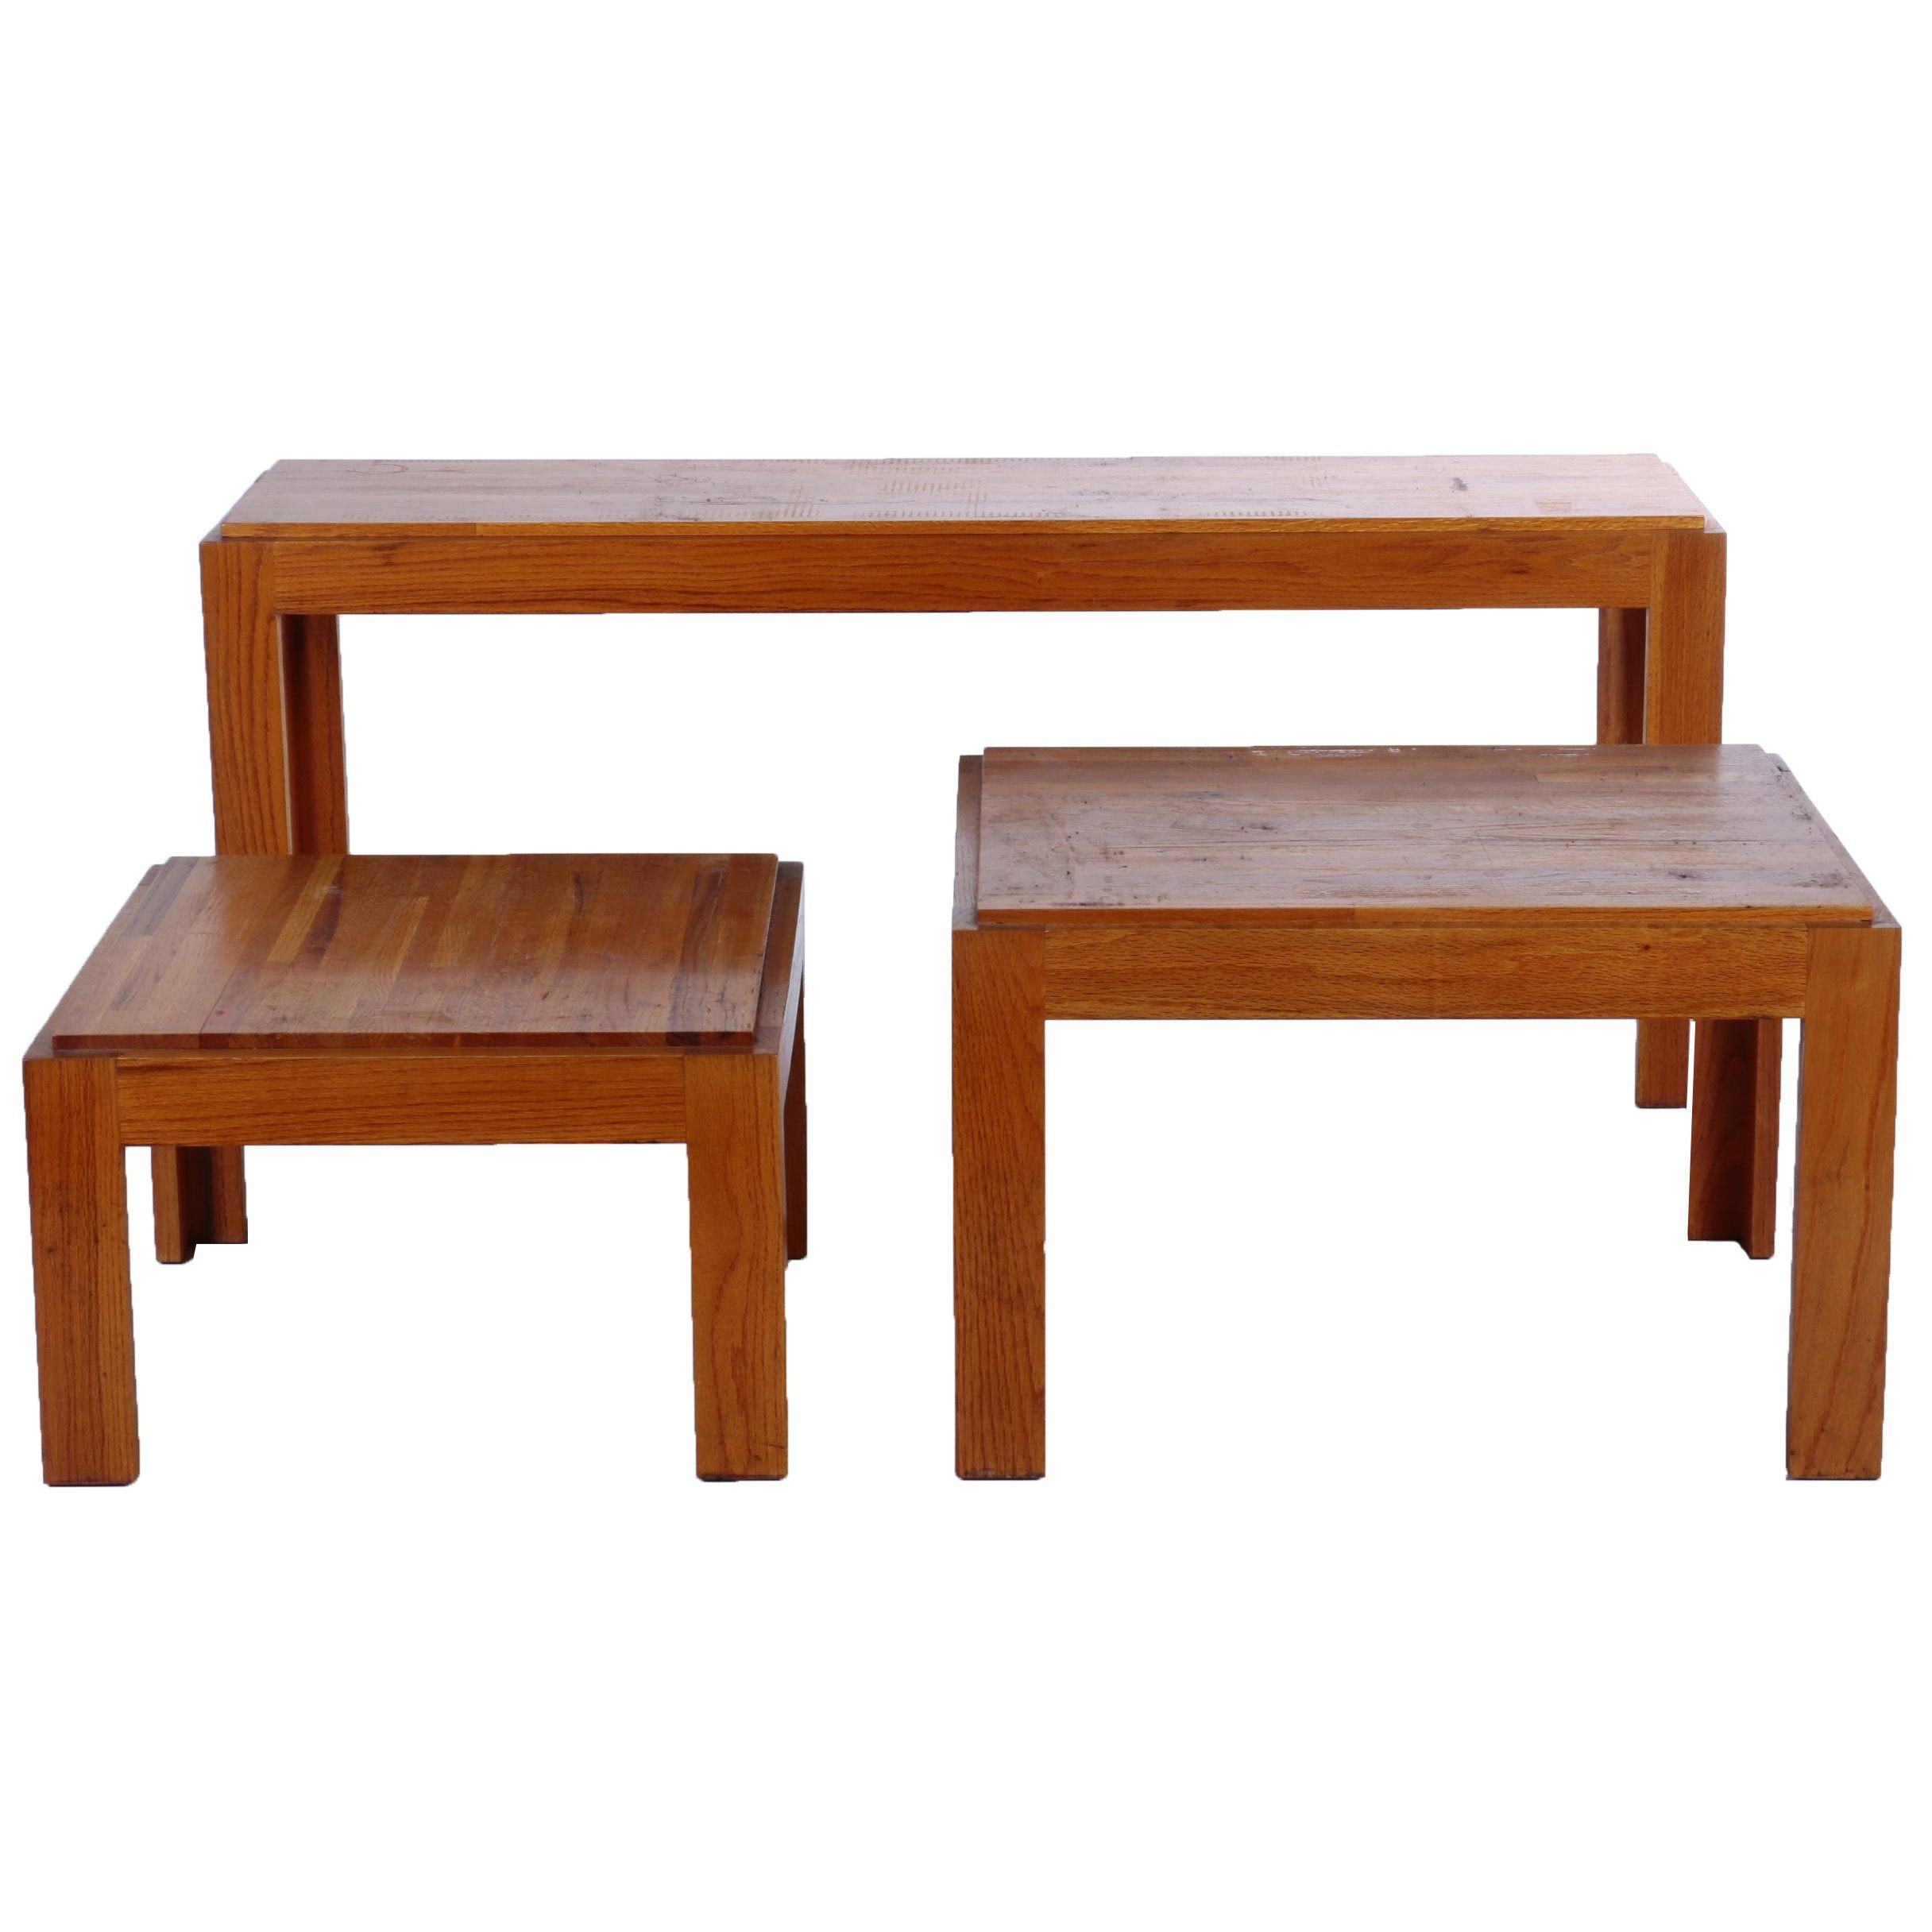 Vintage Oak Side Tables with Matching Console Table